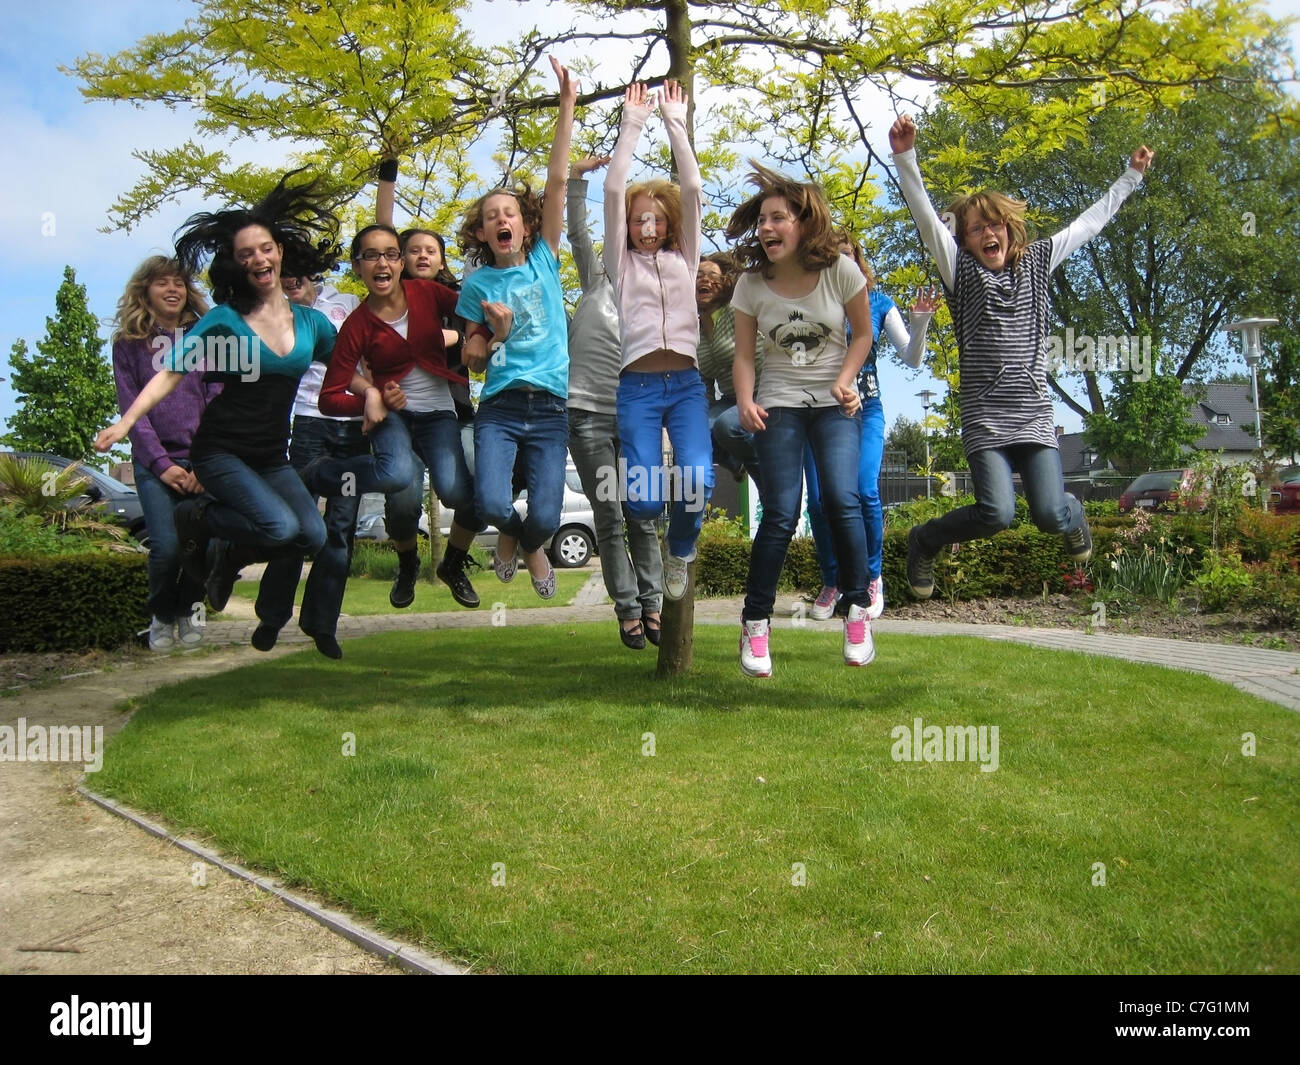 schoolkids jumping - Stock Image